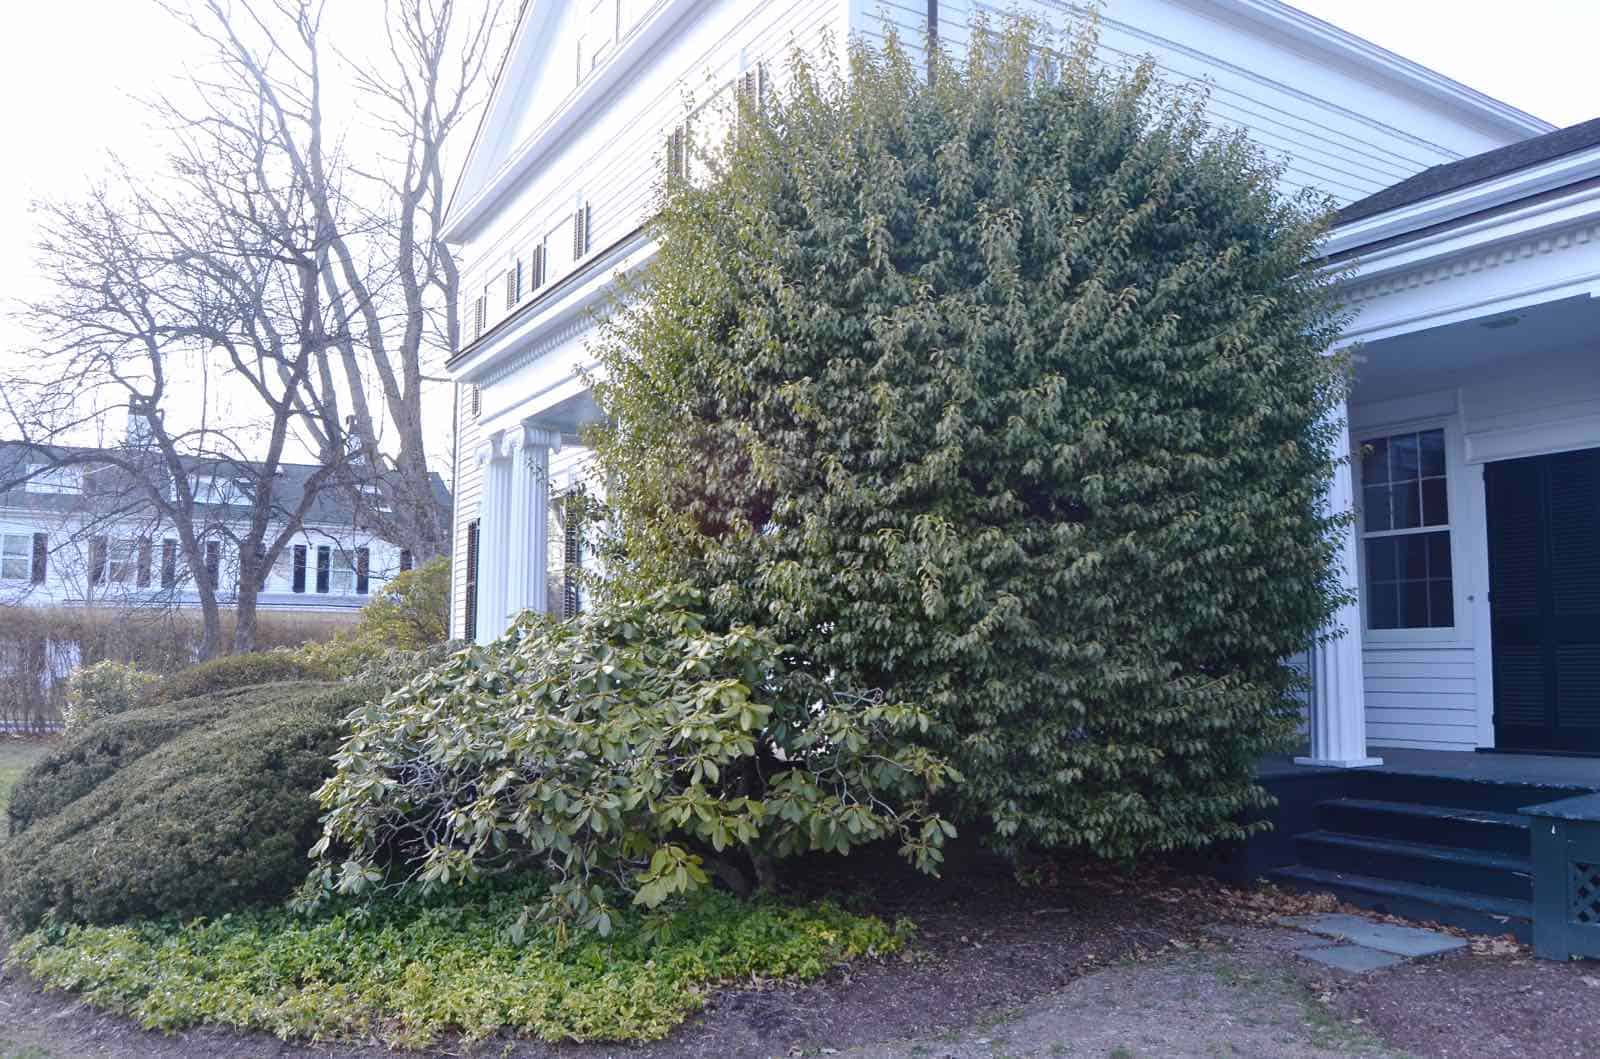 5 reasons to remove trees on your property